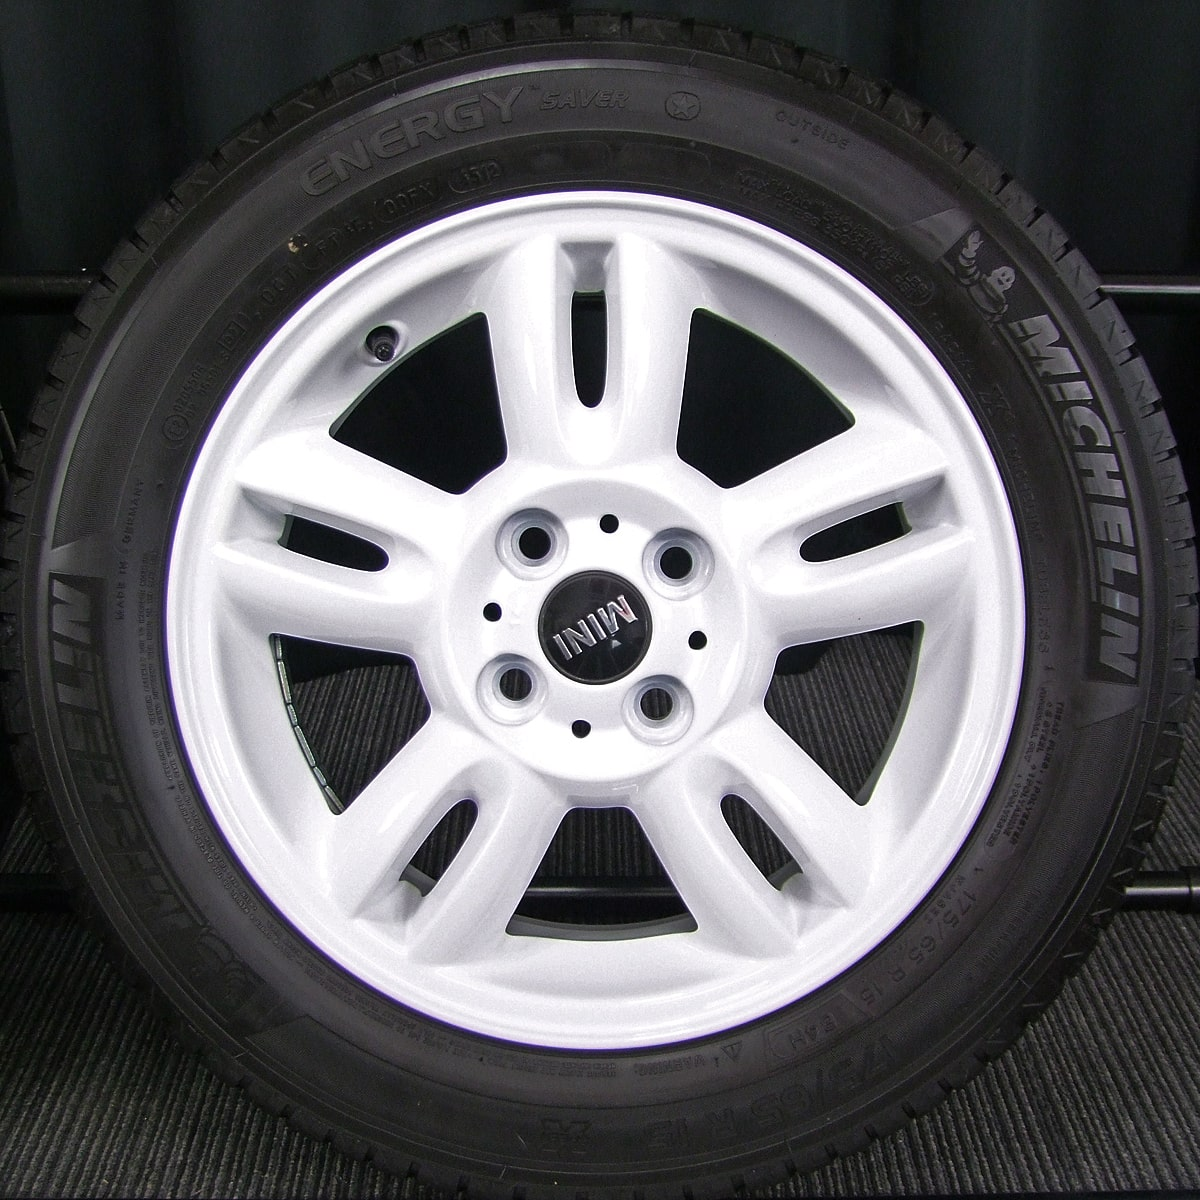 BMW MINI クーパー 純正 R118 ホワイト MICHELIN ENERGY SAVER 175/65R15 4本SET